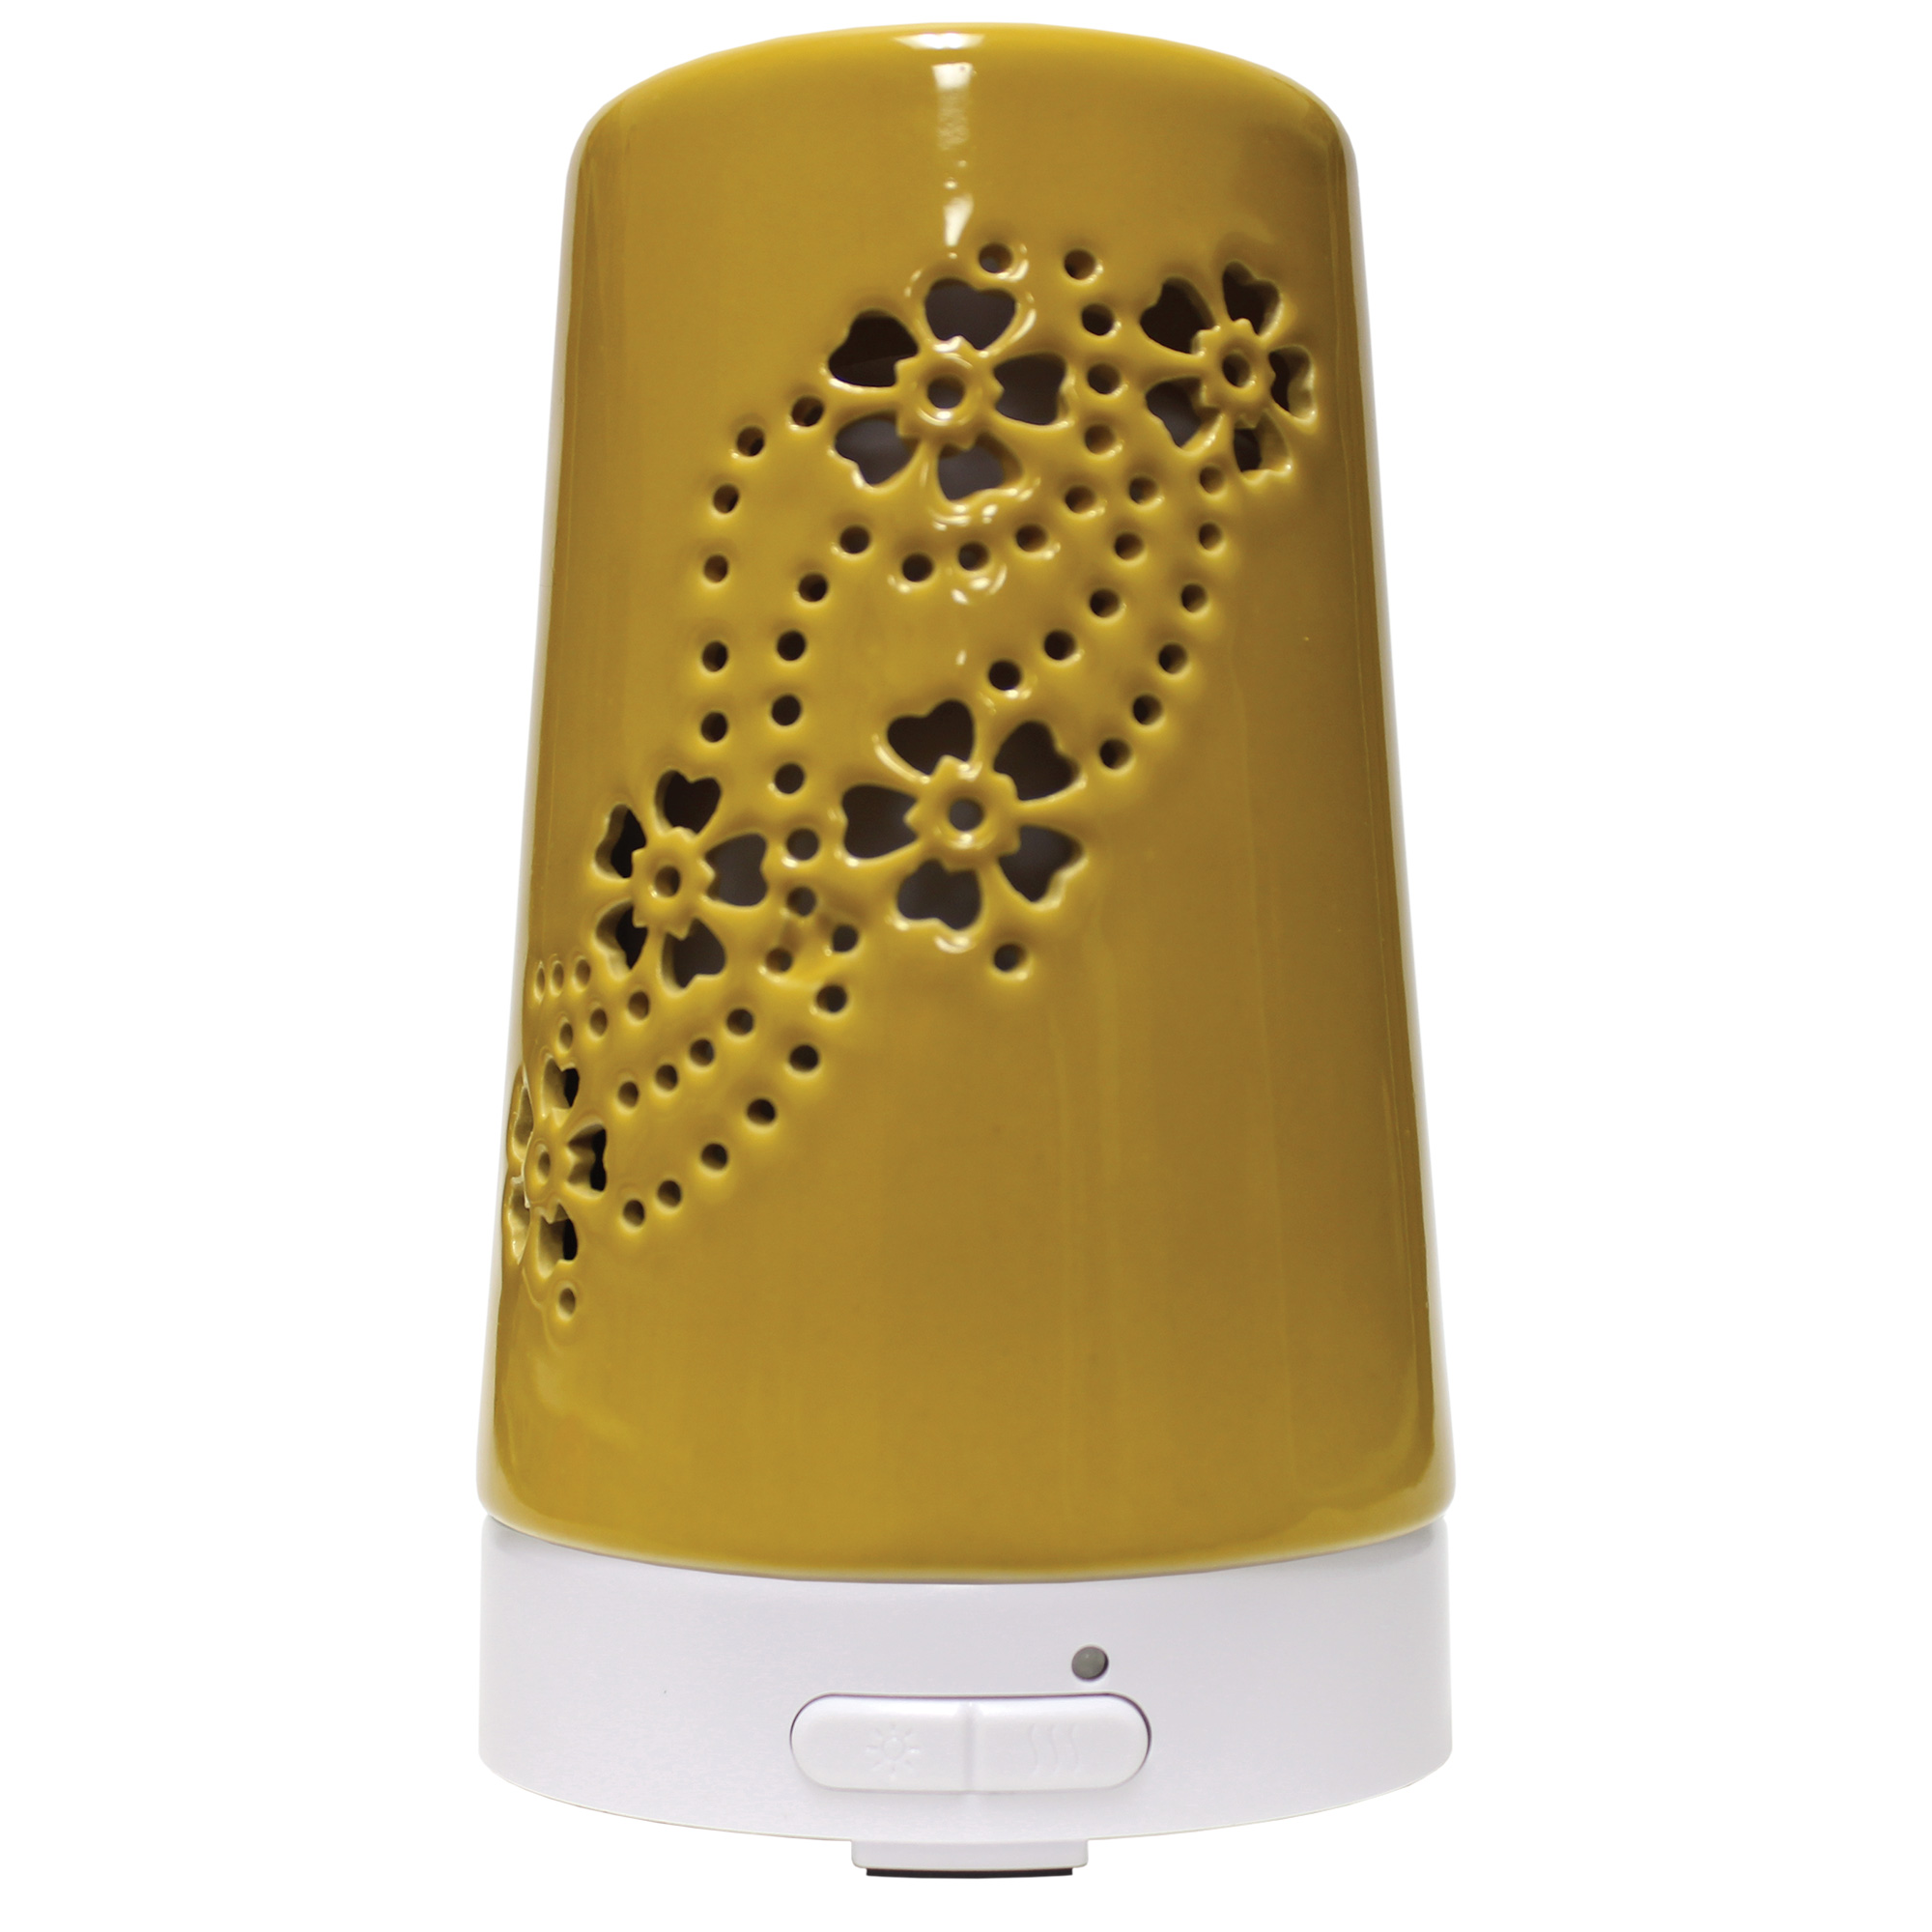 WHISPERING FLOWERS ULTRASONIC OIL DIFFUSERUPC# 674623018058